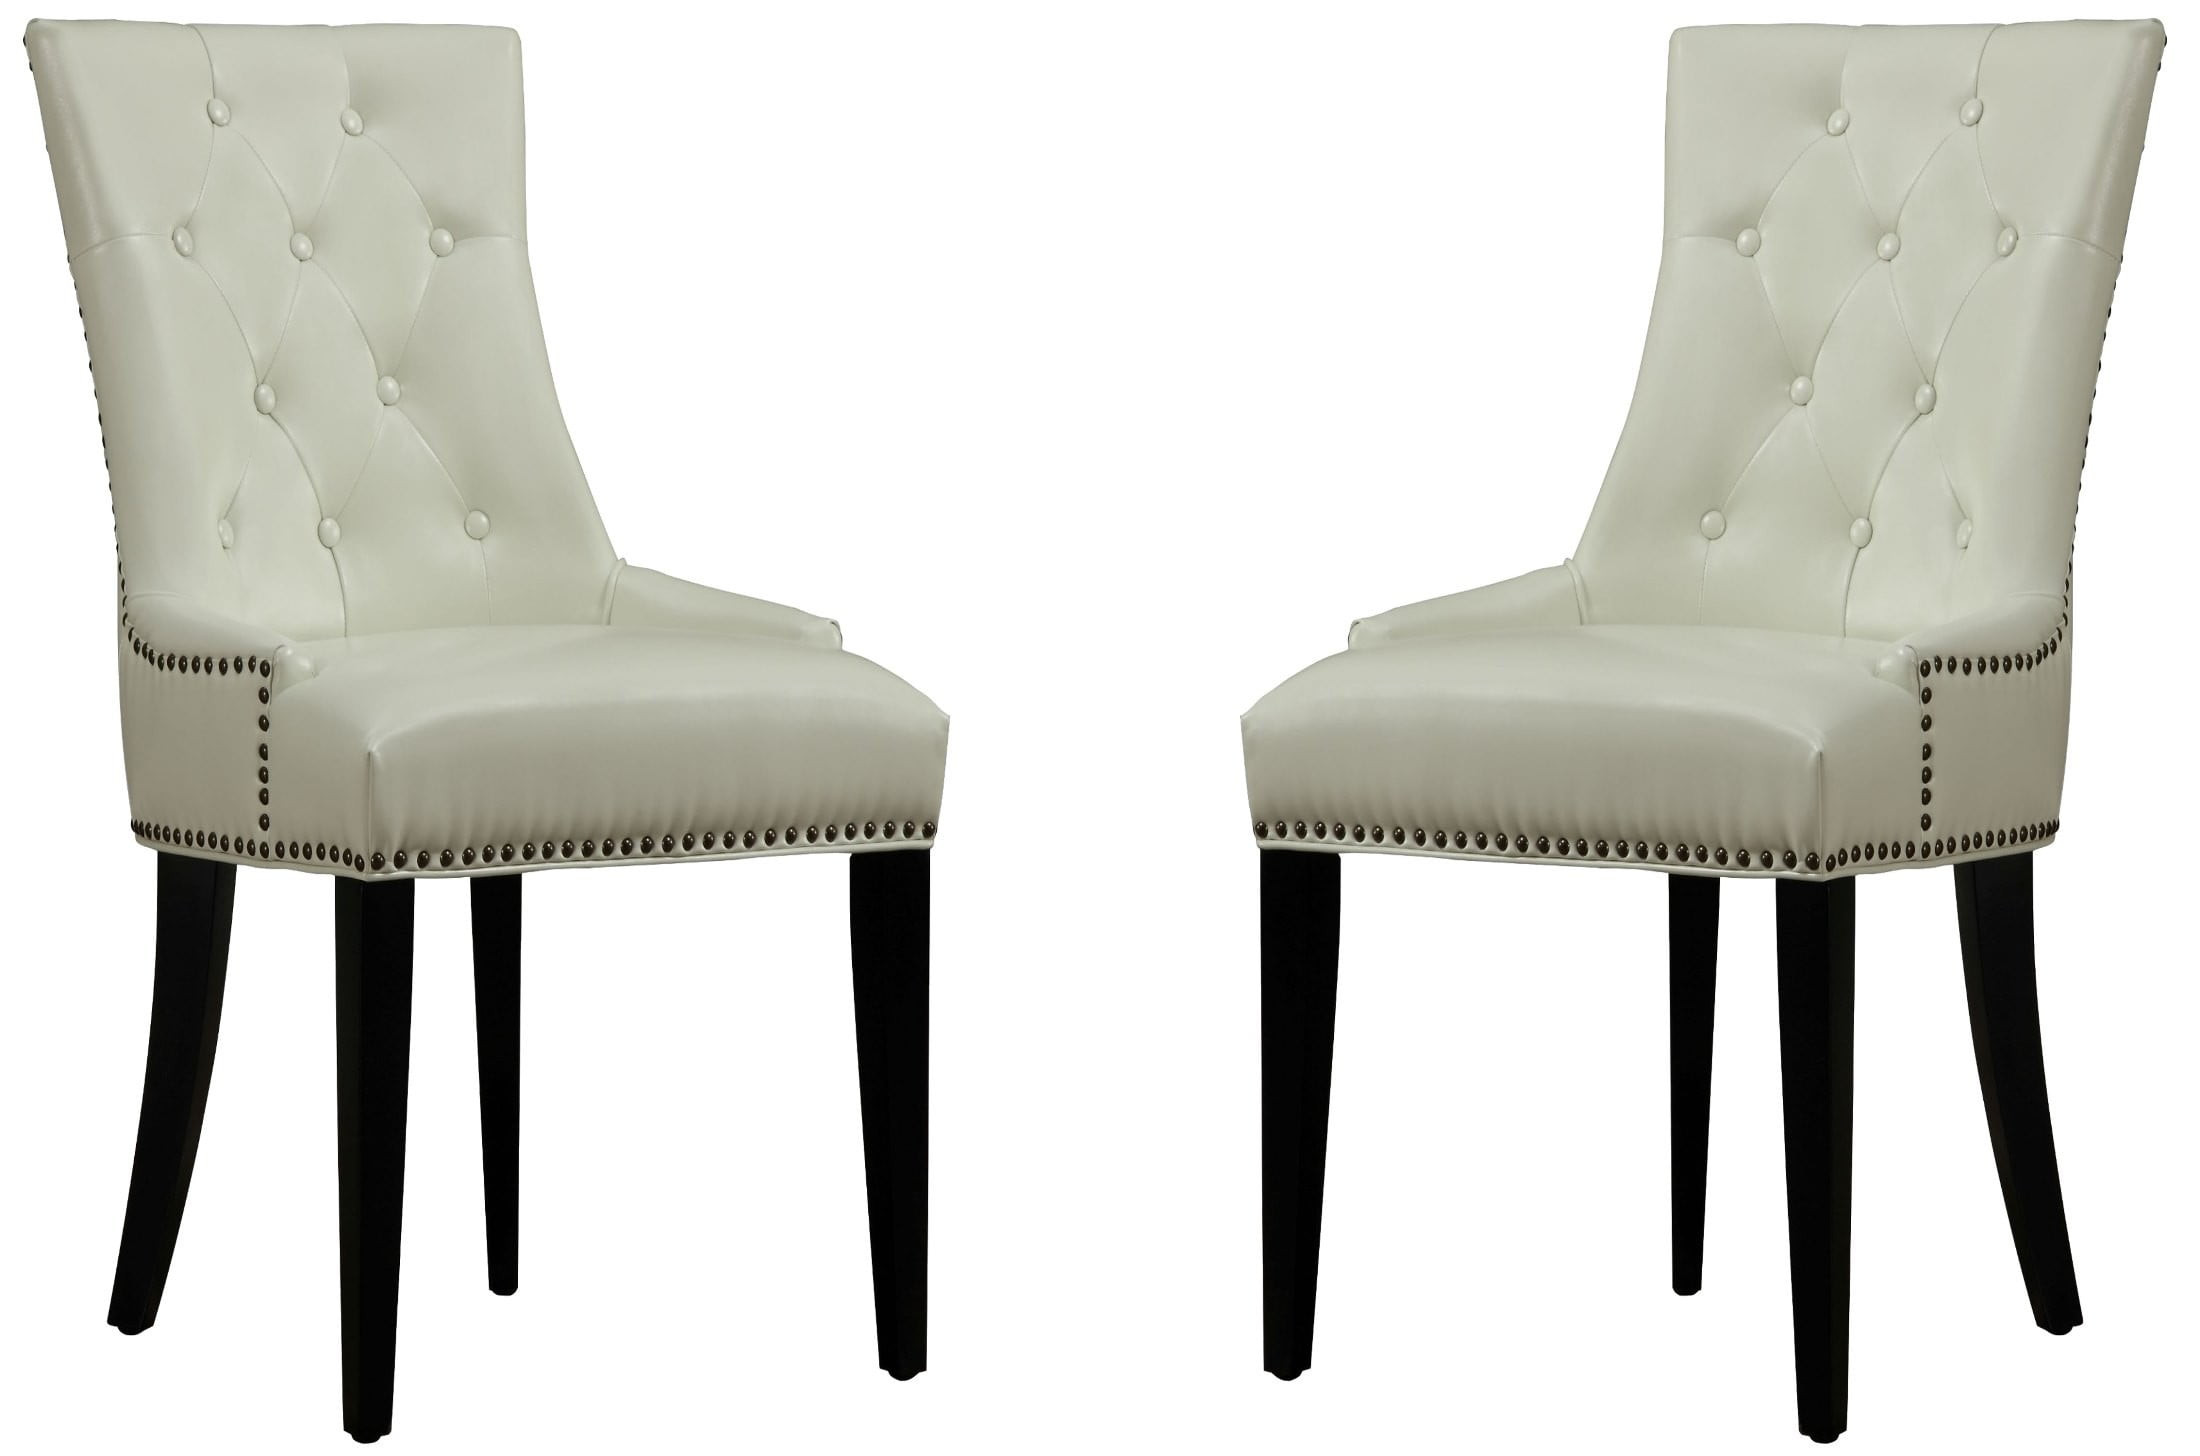 Cream Leather Dining Chairs Uptown Cream Leather Dining Chair Set Of 2 From Tov D29